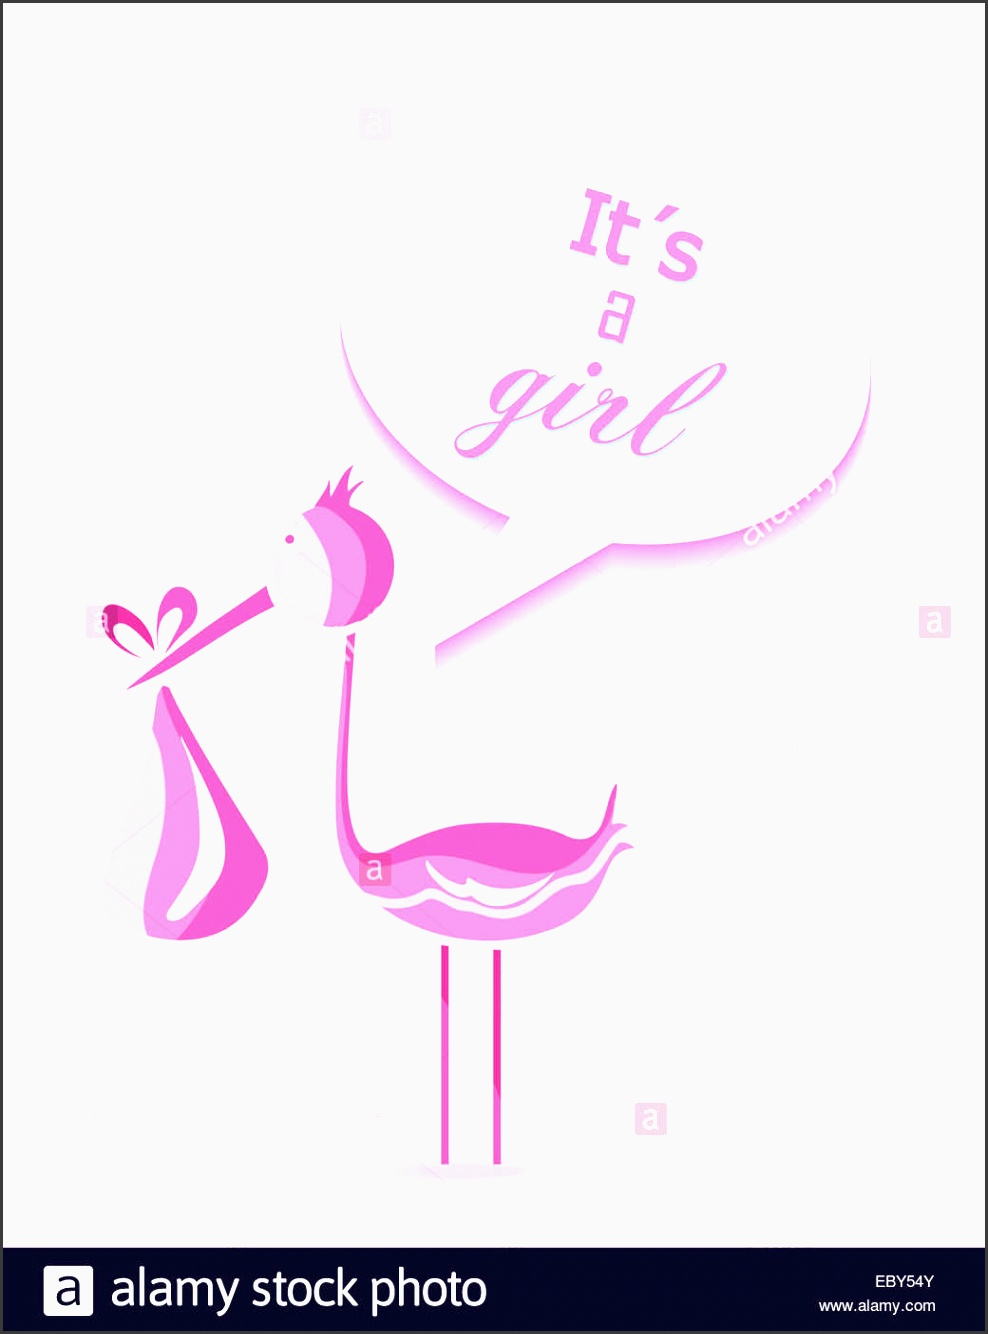 baby shower girl invitation card design with its a girl text and pink stork eps10 vector file organized in layers for easy edit